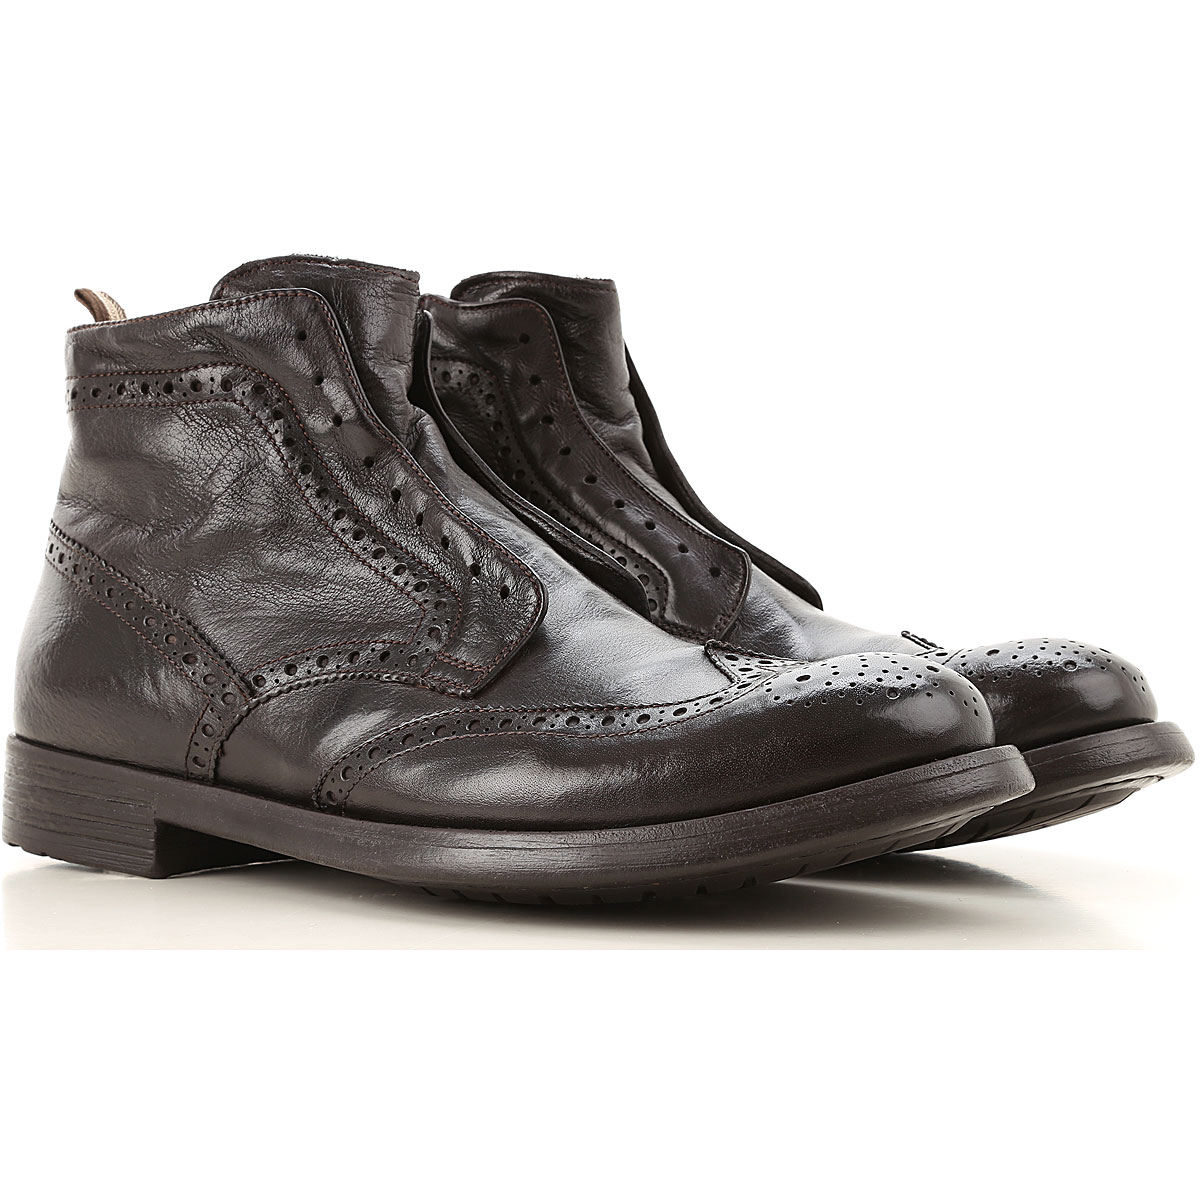 Officine Creative Boots for Men, Booties On Sale, Dark Ebony, Leather, 2019, 10 10.5 11.5 12 9.5